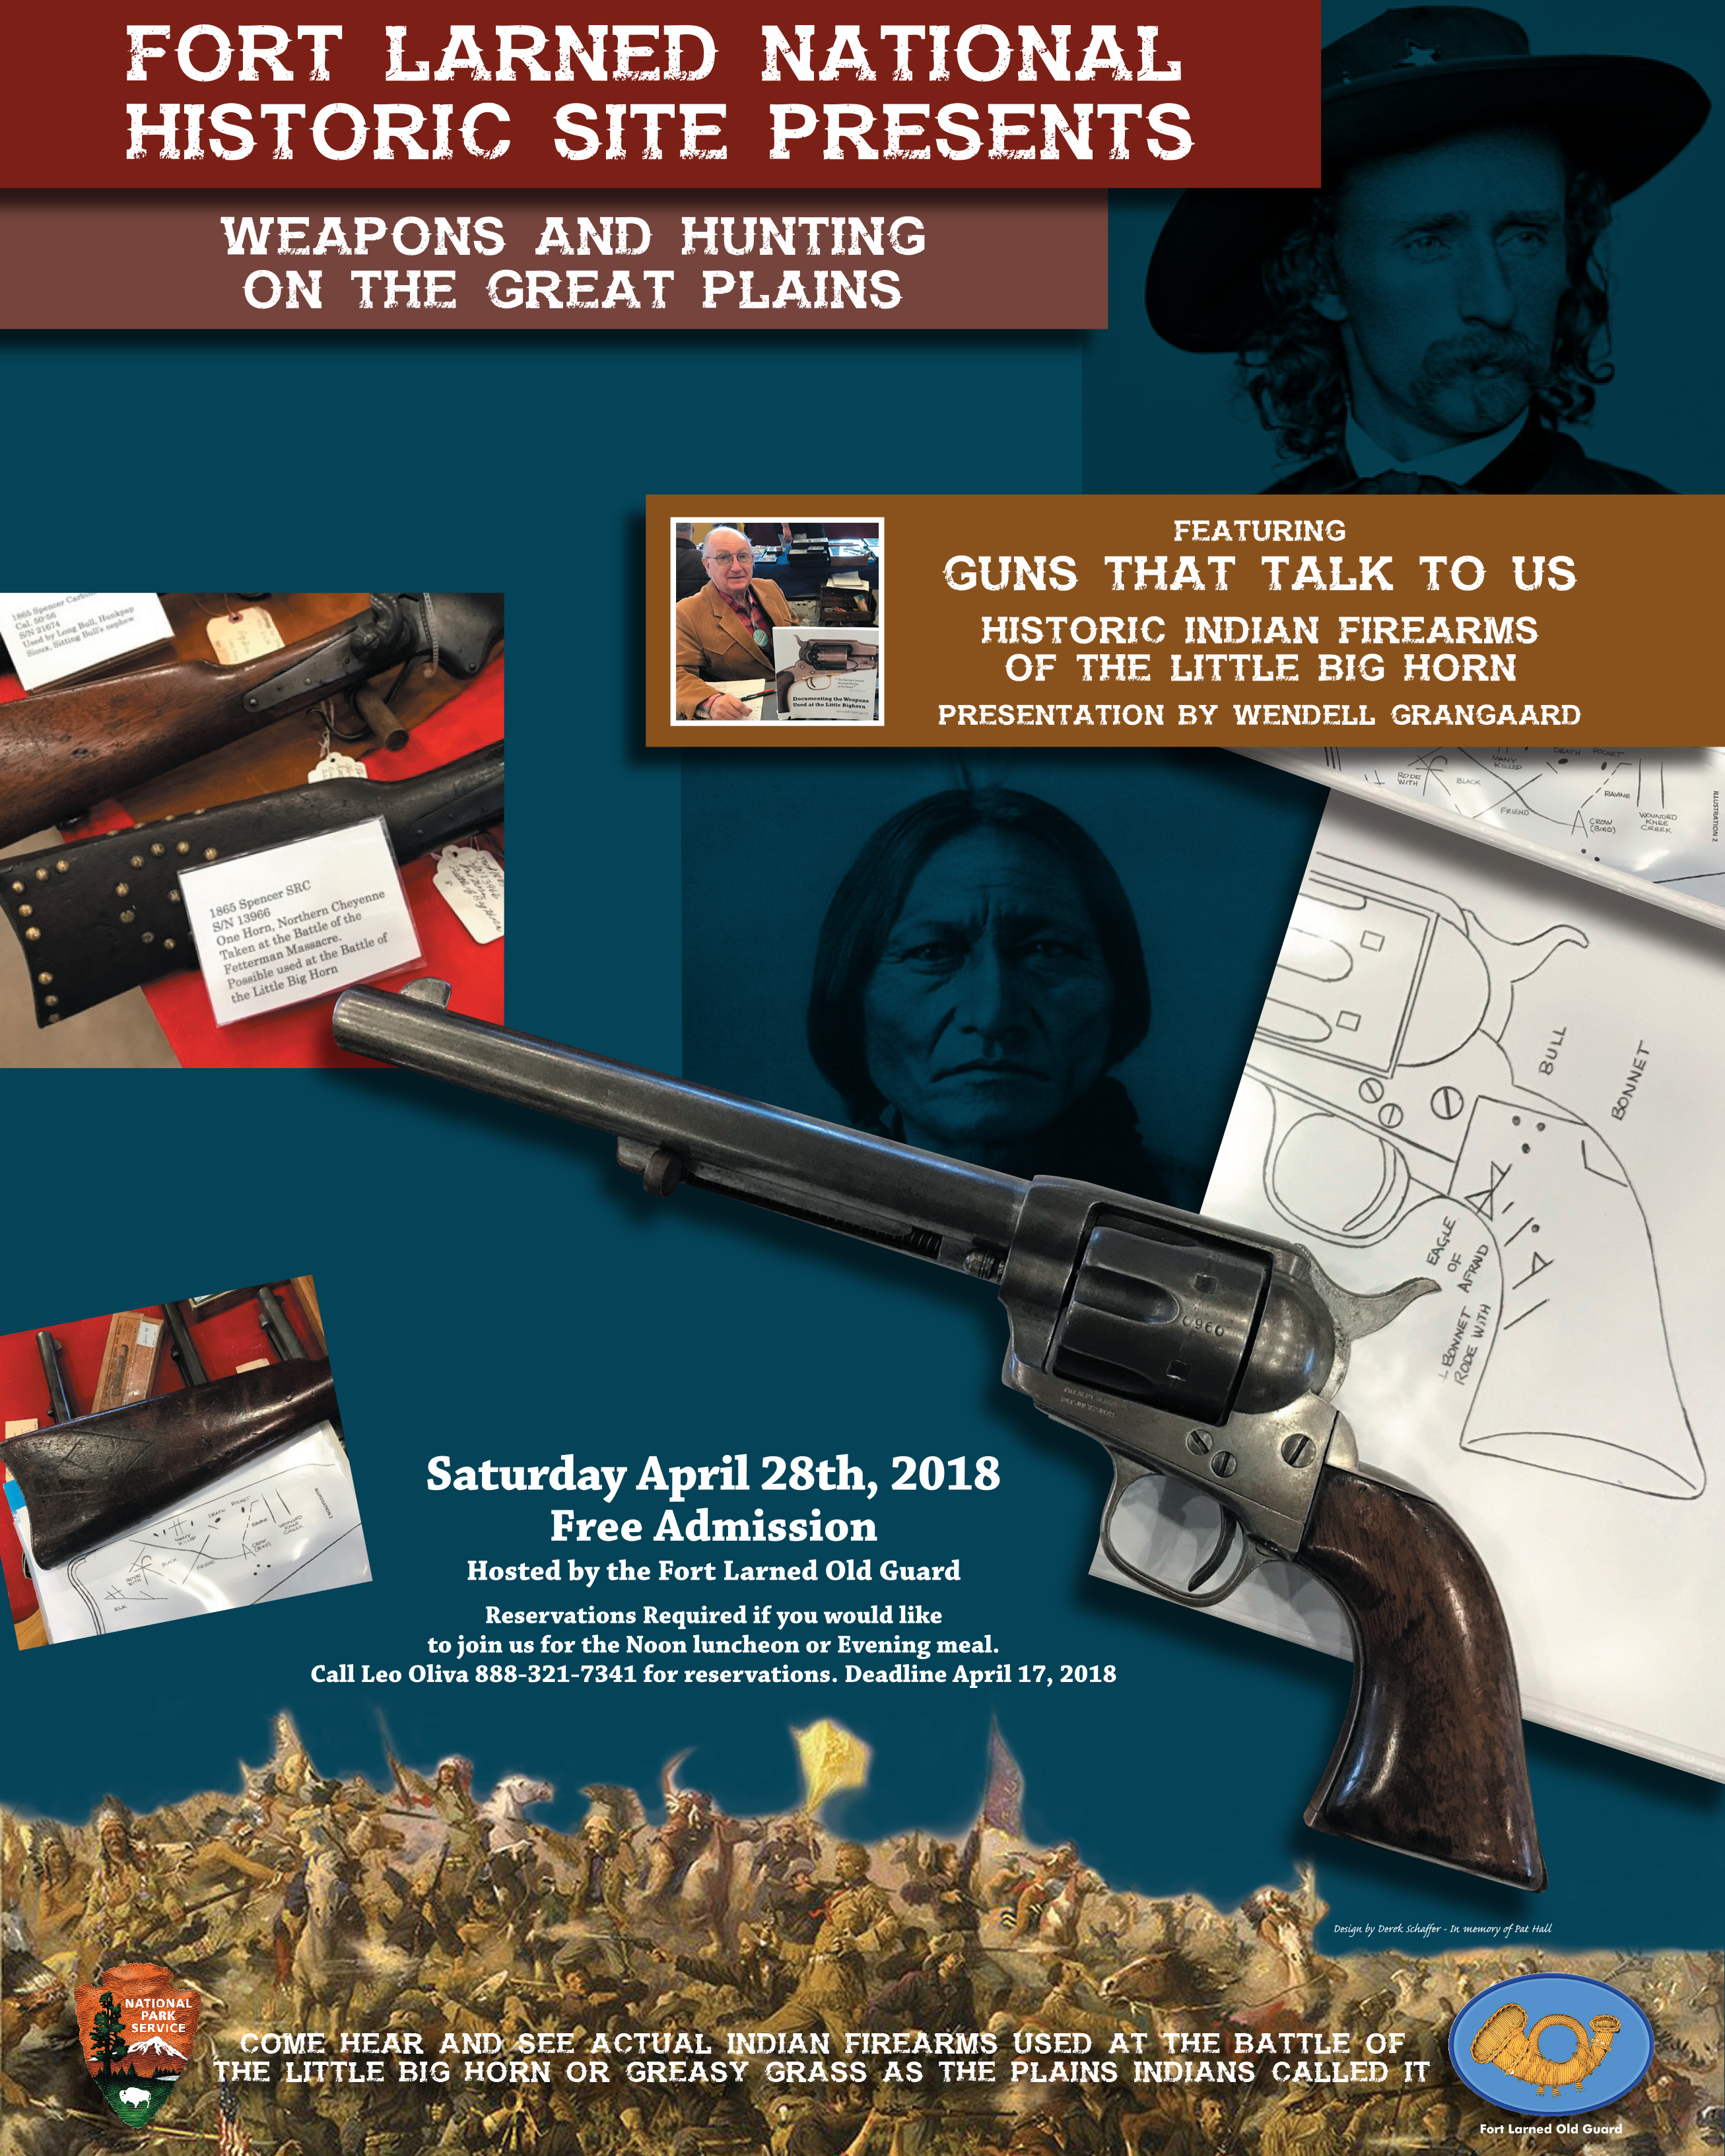 A layout image that shows several images of historic weapons, Sitting Bull, and George Armstrong Custer.